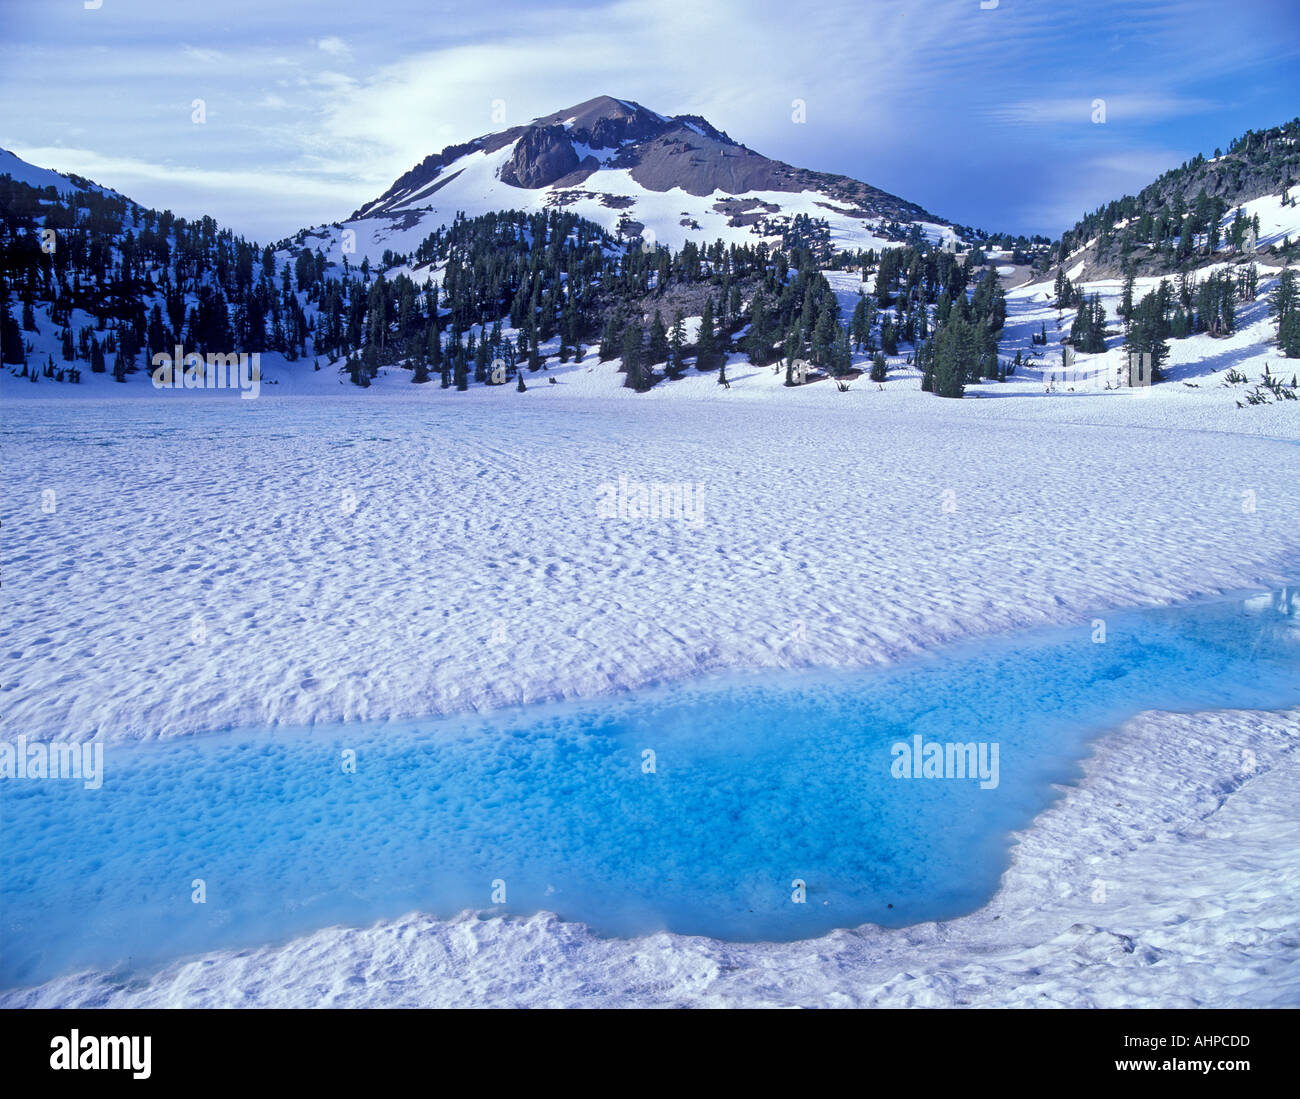 Azure water on shore of thawing Lake Helen with Mount Lassen California - Stock Image